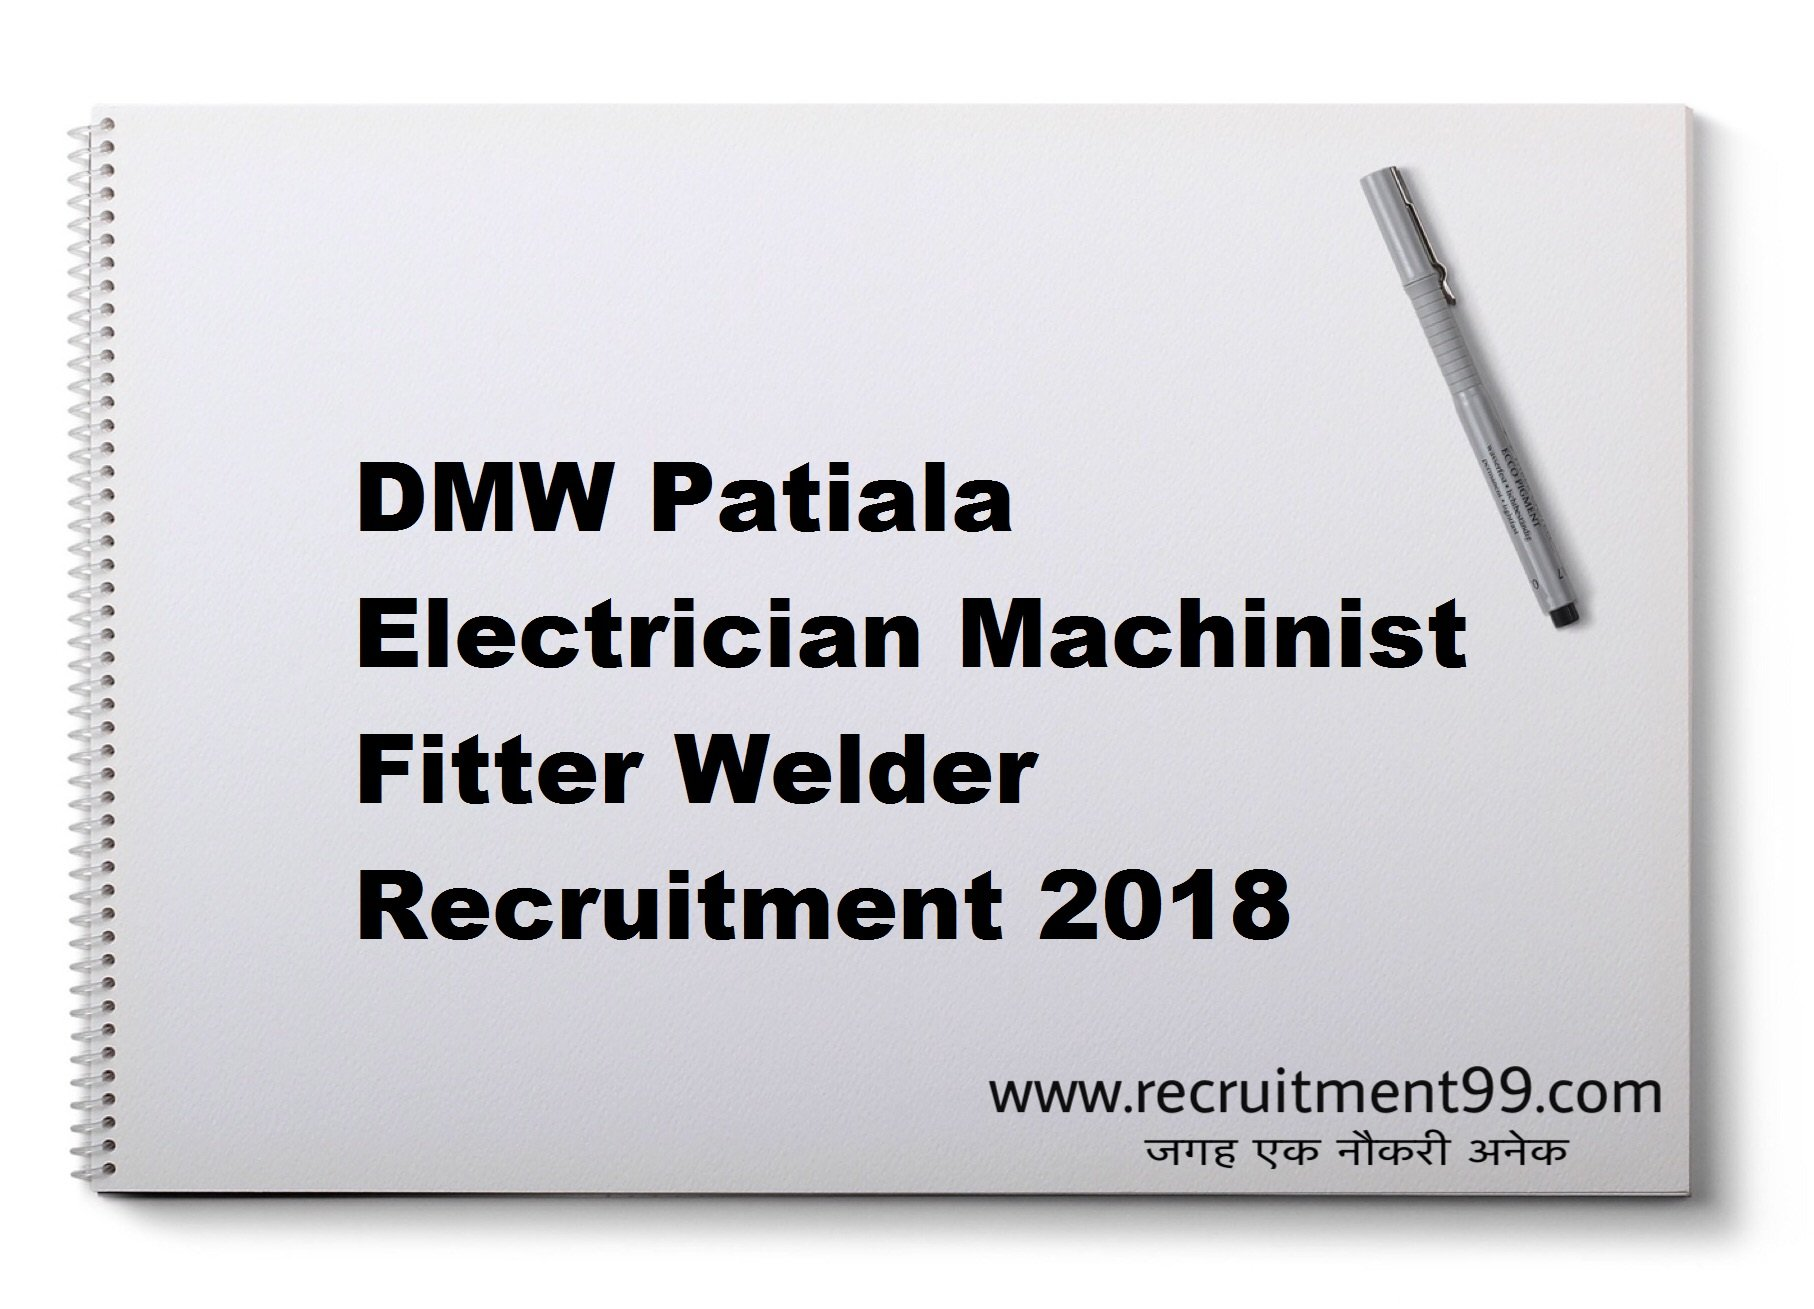 DMW Patiala Electrician Machinist Fitter Welder Recruitment Admit Card Result 2018